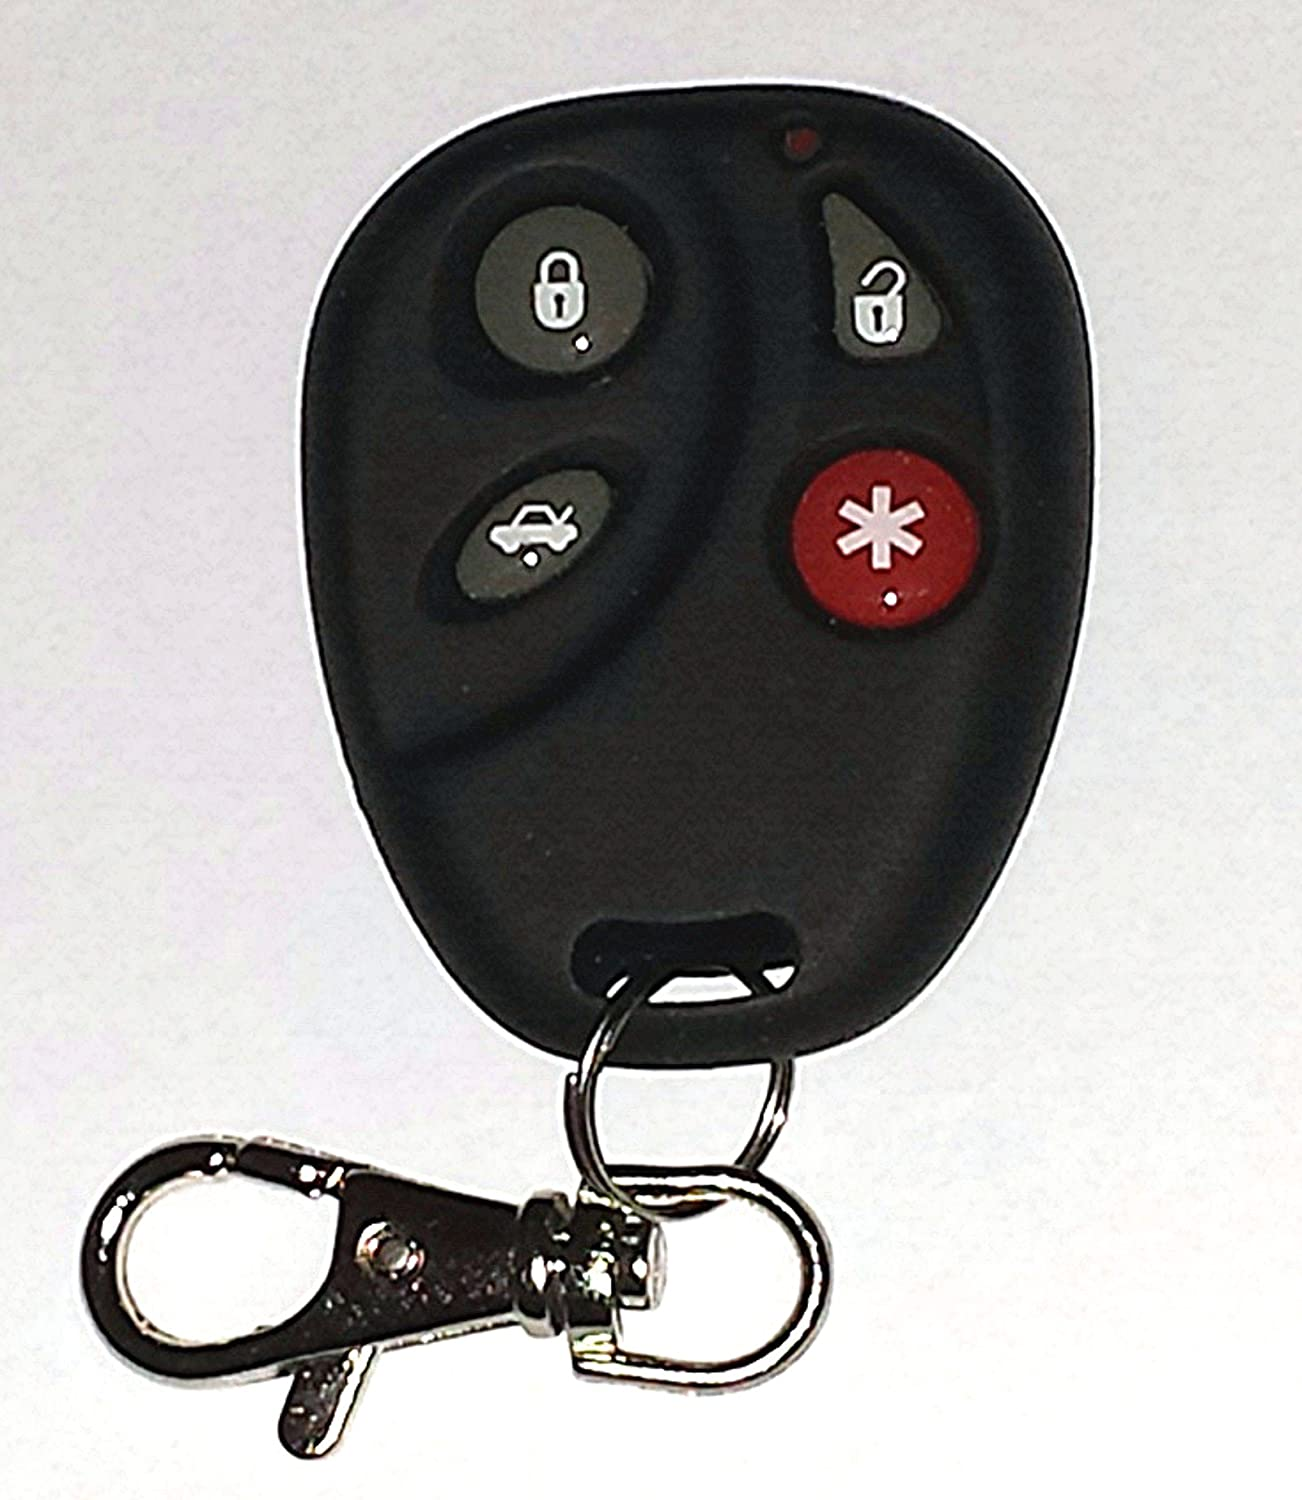 OUC60270, OUC60221 Set of 2 USARemote 4332964343 Key Fob Keyless Entry Remote with Ignition Key fits Cadillac DTS // Chevy Impala Monte Carlo 2006-2013